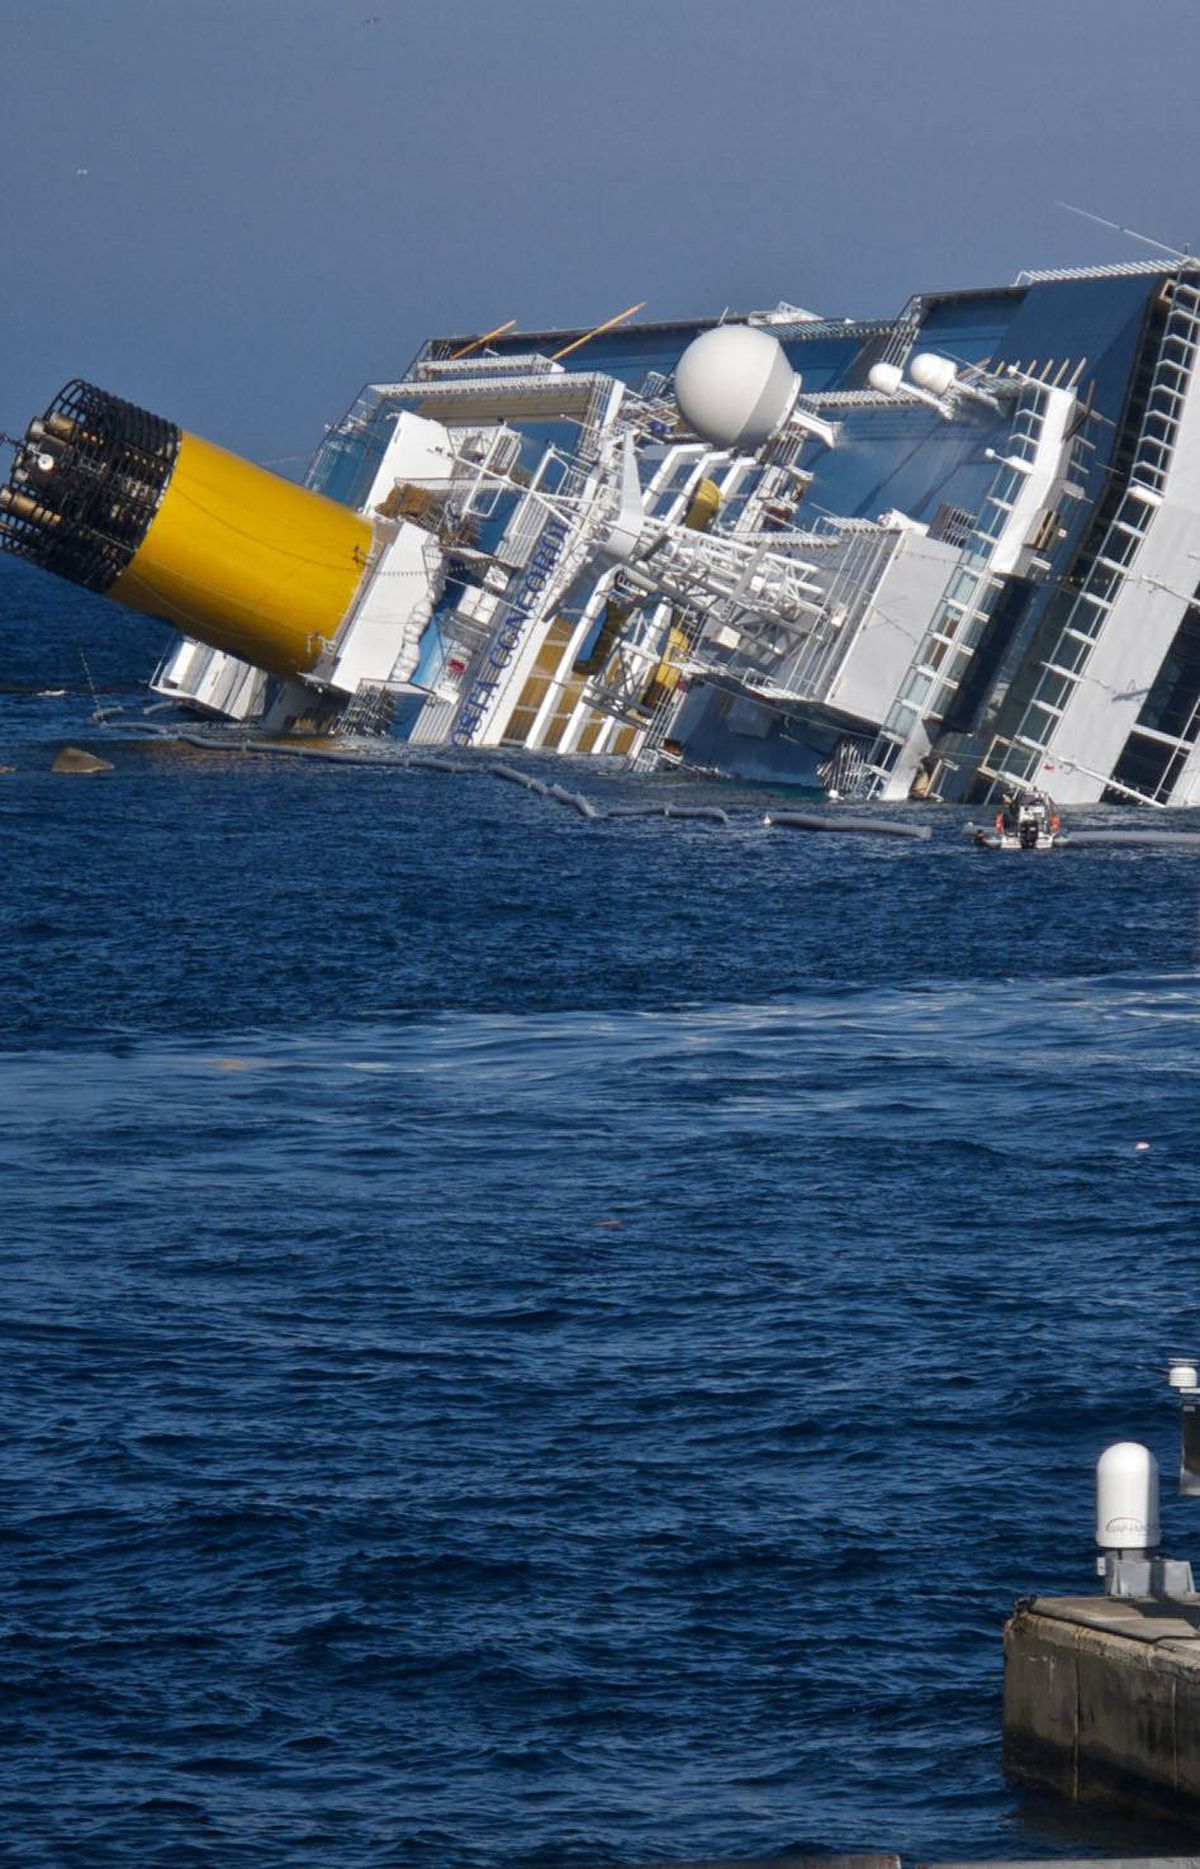 """DOCUMENTARY Cruise Ship Disaster: Inside the Concordia Discovery, 9 p.m. ET; 10 p.m. PT What really happened on-board the Costa Concordia? The running aground of the massive cruise ship after hitting a reef near the Italian coastline in early January caused the death of at least 25 people and garnered worldwide attention. Most of the headlines vilified the Concordia's captain, Francesco Schettino, for allegedly trying to save his own bacon before attending to the rescue of his 4,200-plus passengers. This new documentary does little to salvage Schettino's reputation. In previously unseen footage, the captain is shown speaking on the phone on the bridge, seemingly oblivious to the catastrophe unfolding; inexplicably, he keeps requesting """"tug boats"""" instead of rescue ships. In clinical fashion, the film deconstructs the disaster, with fresh perspectives from naval forensic specialists."""